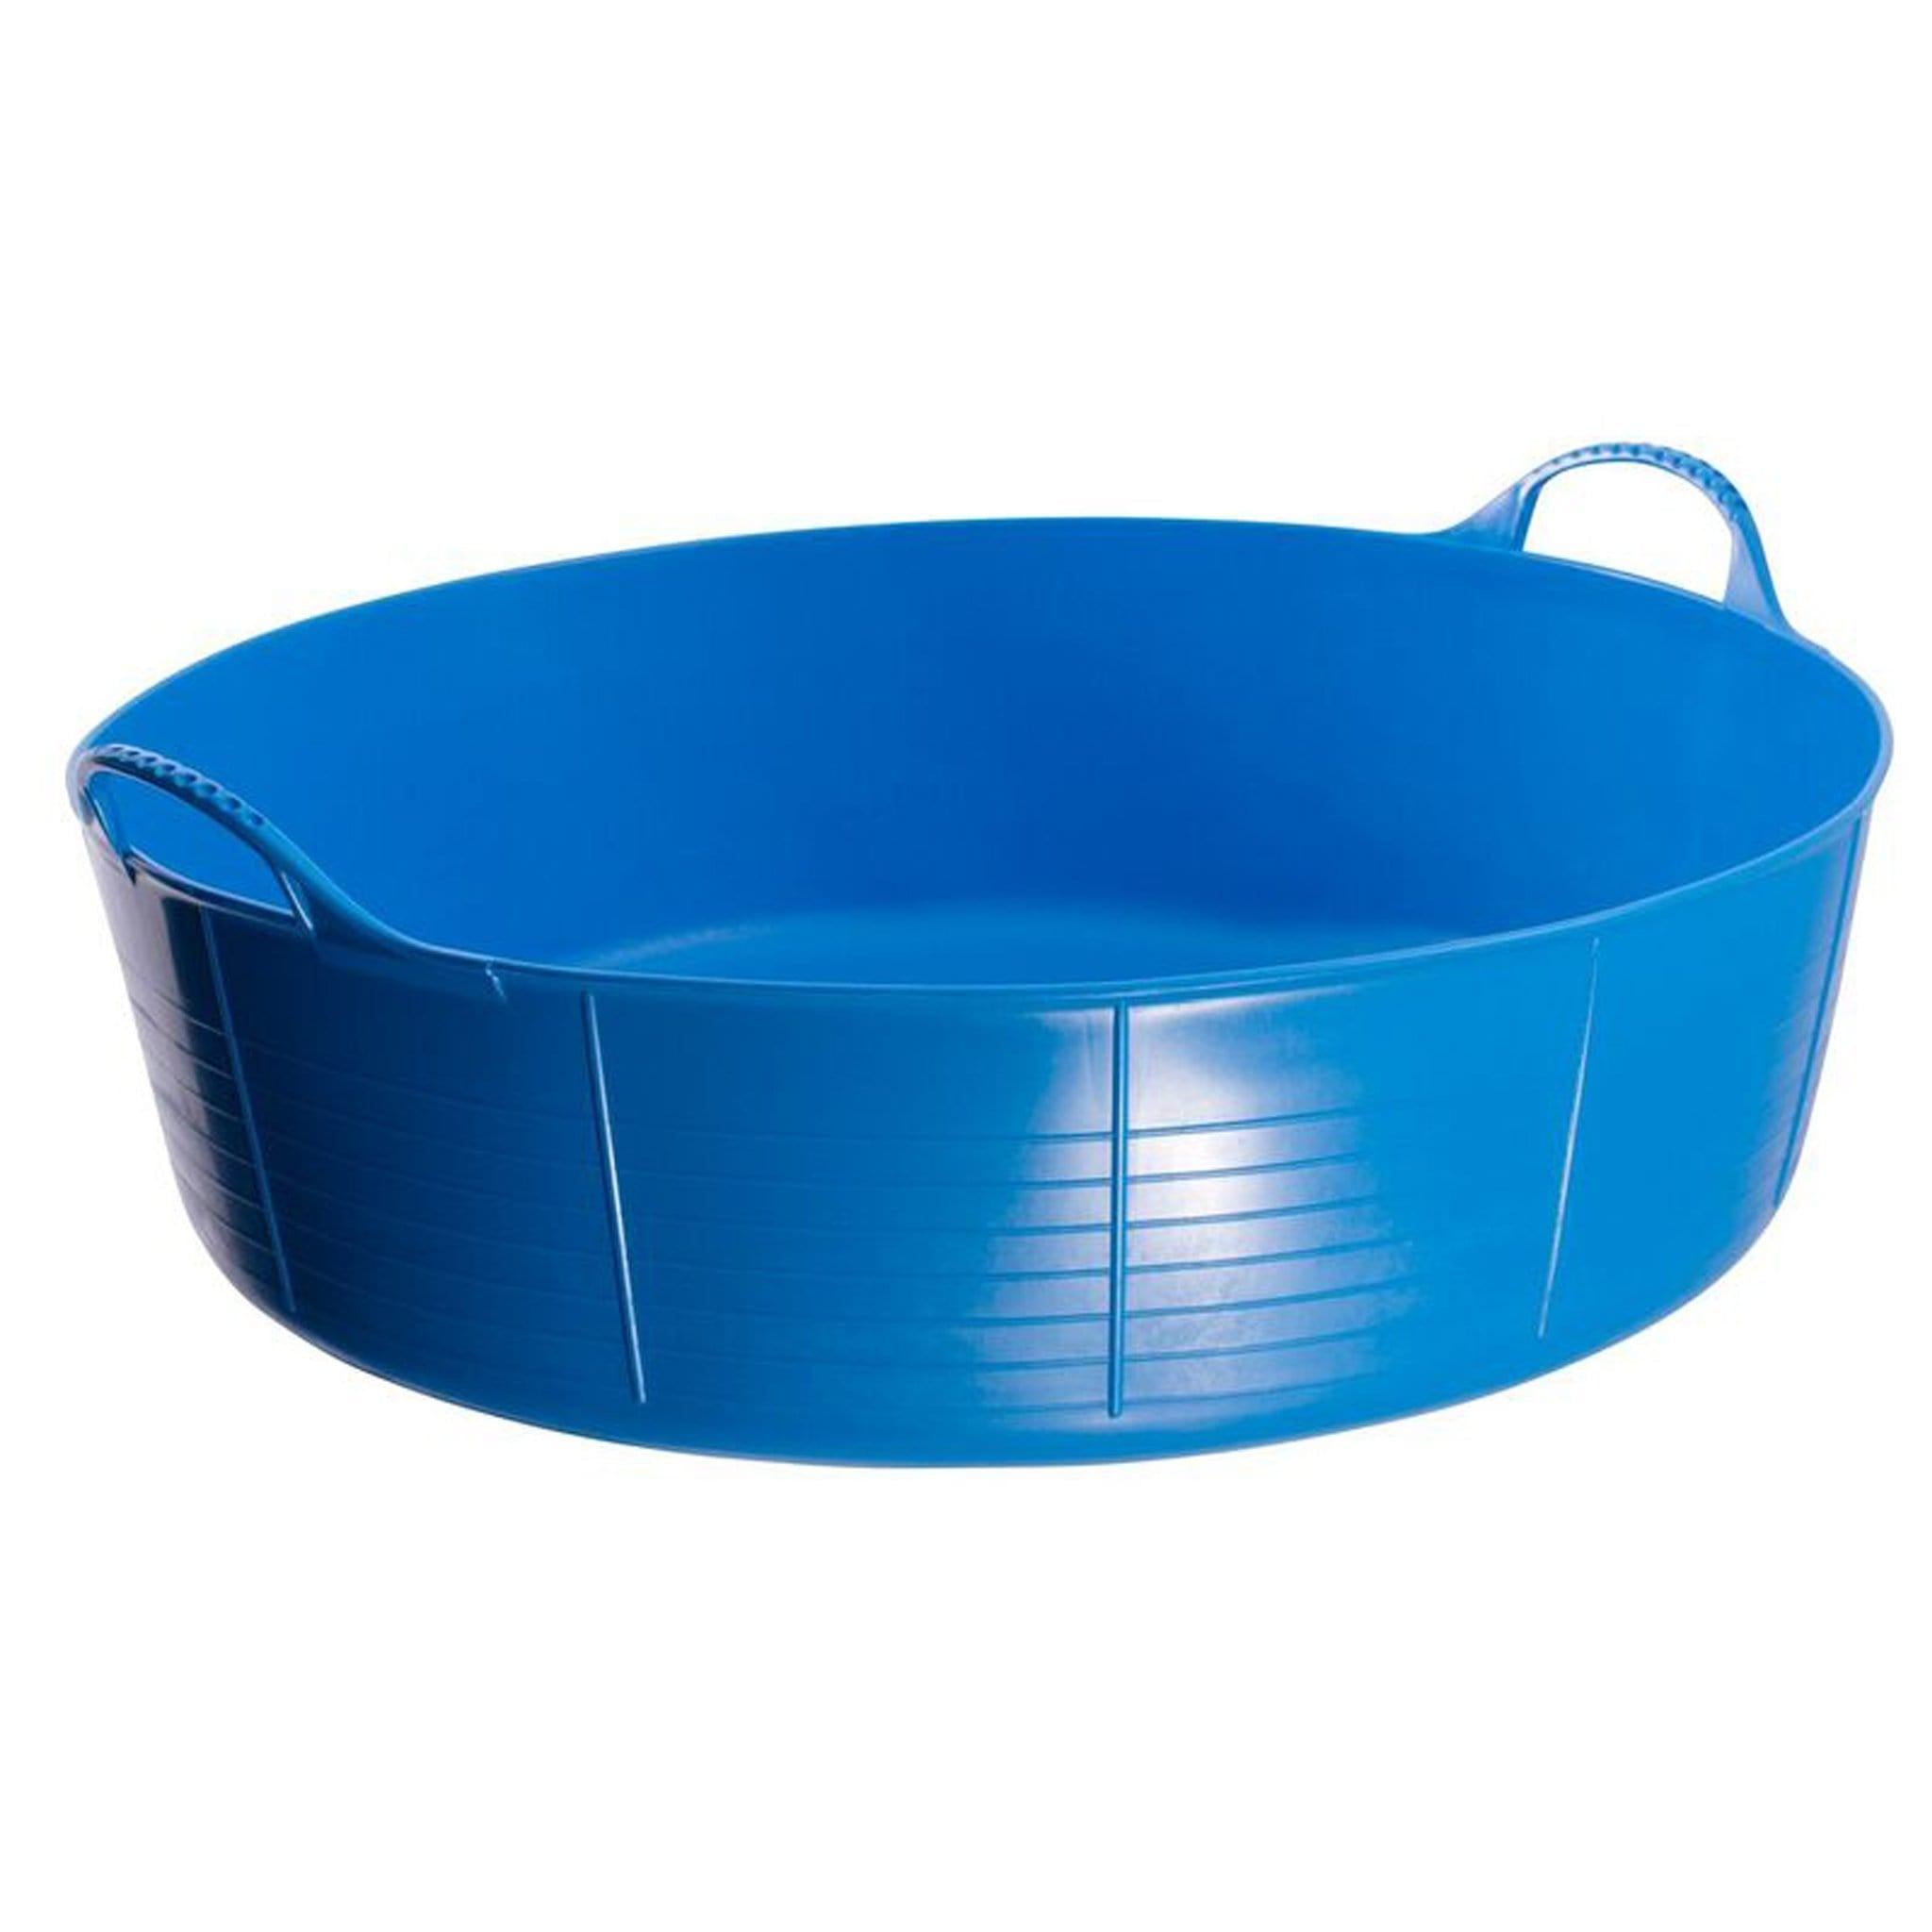 Red Gorilla TubTrug Large Flexible Shallow Bowl Blue KGR0255